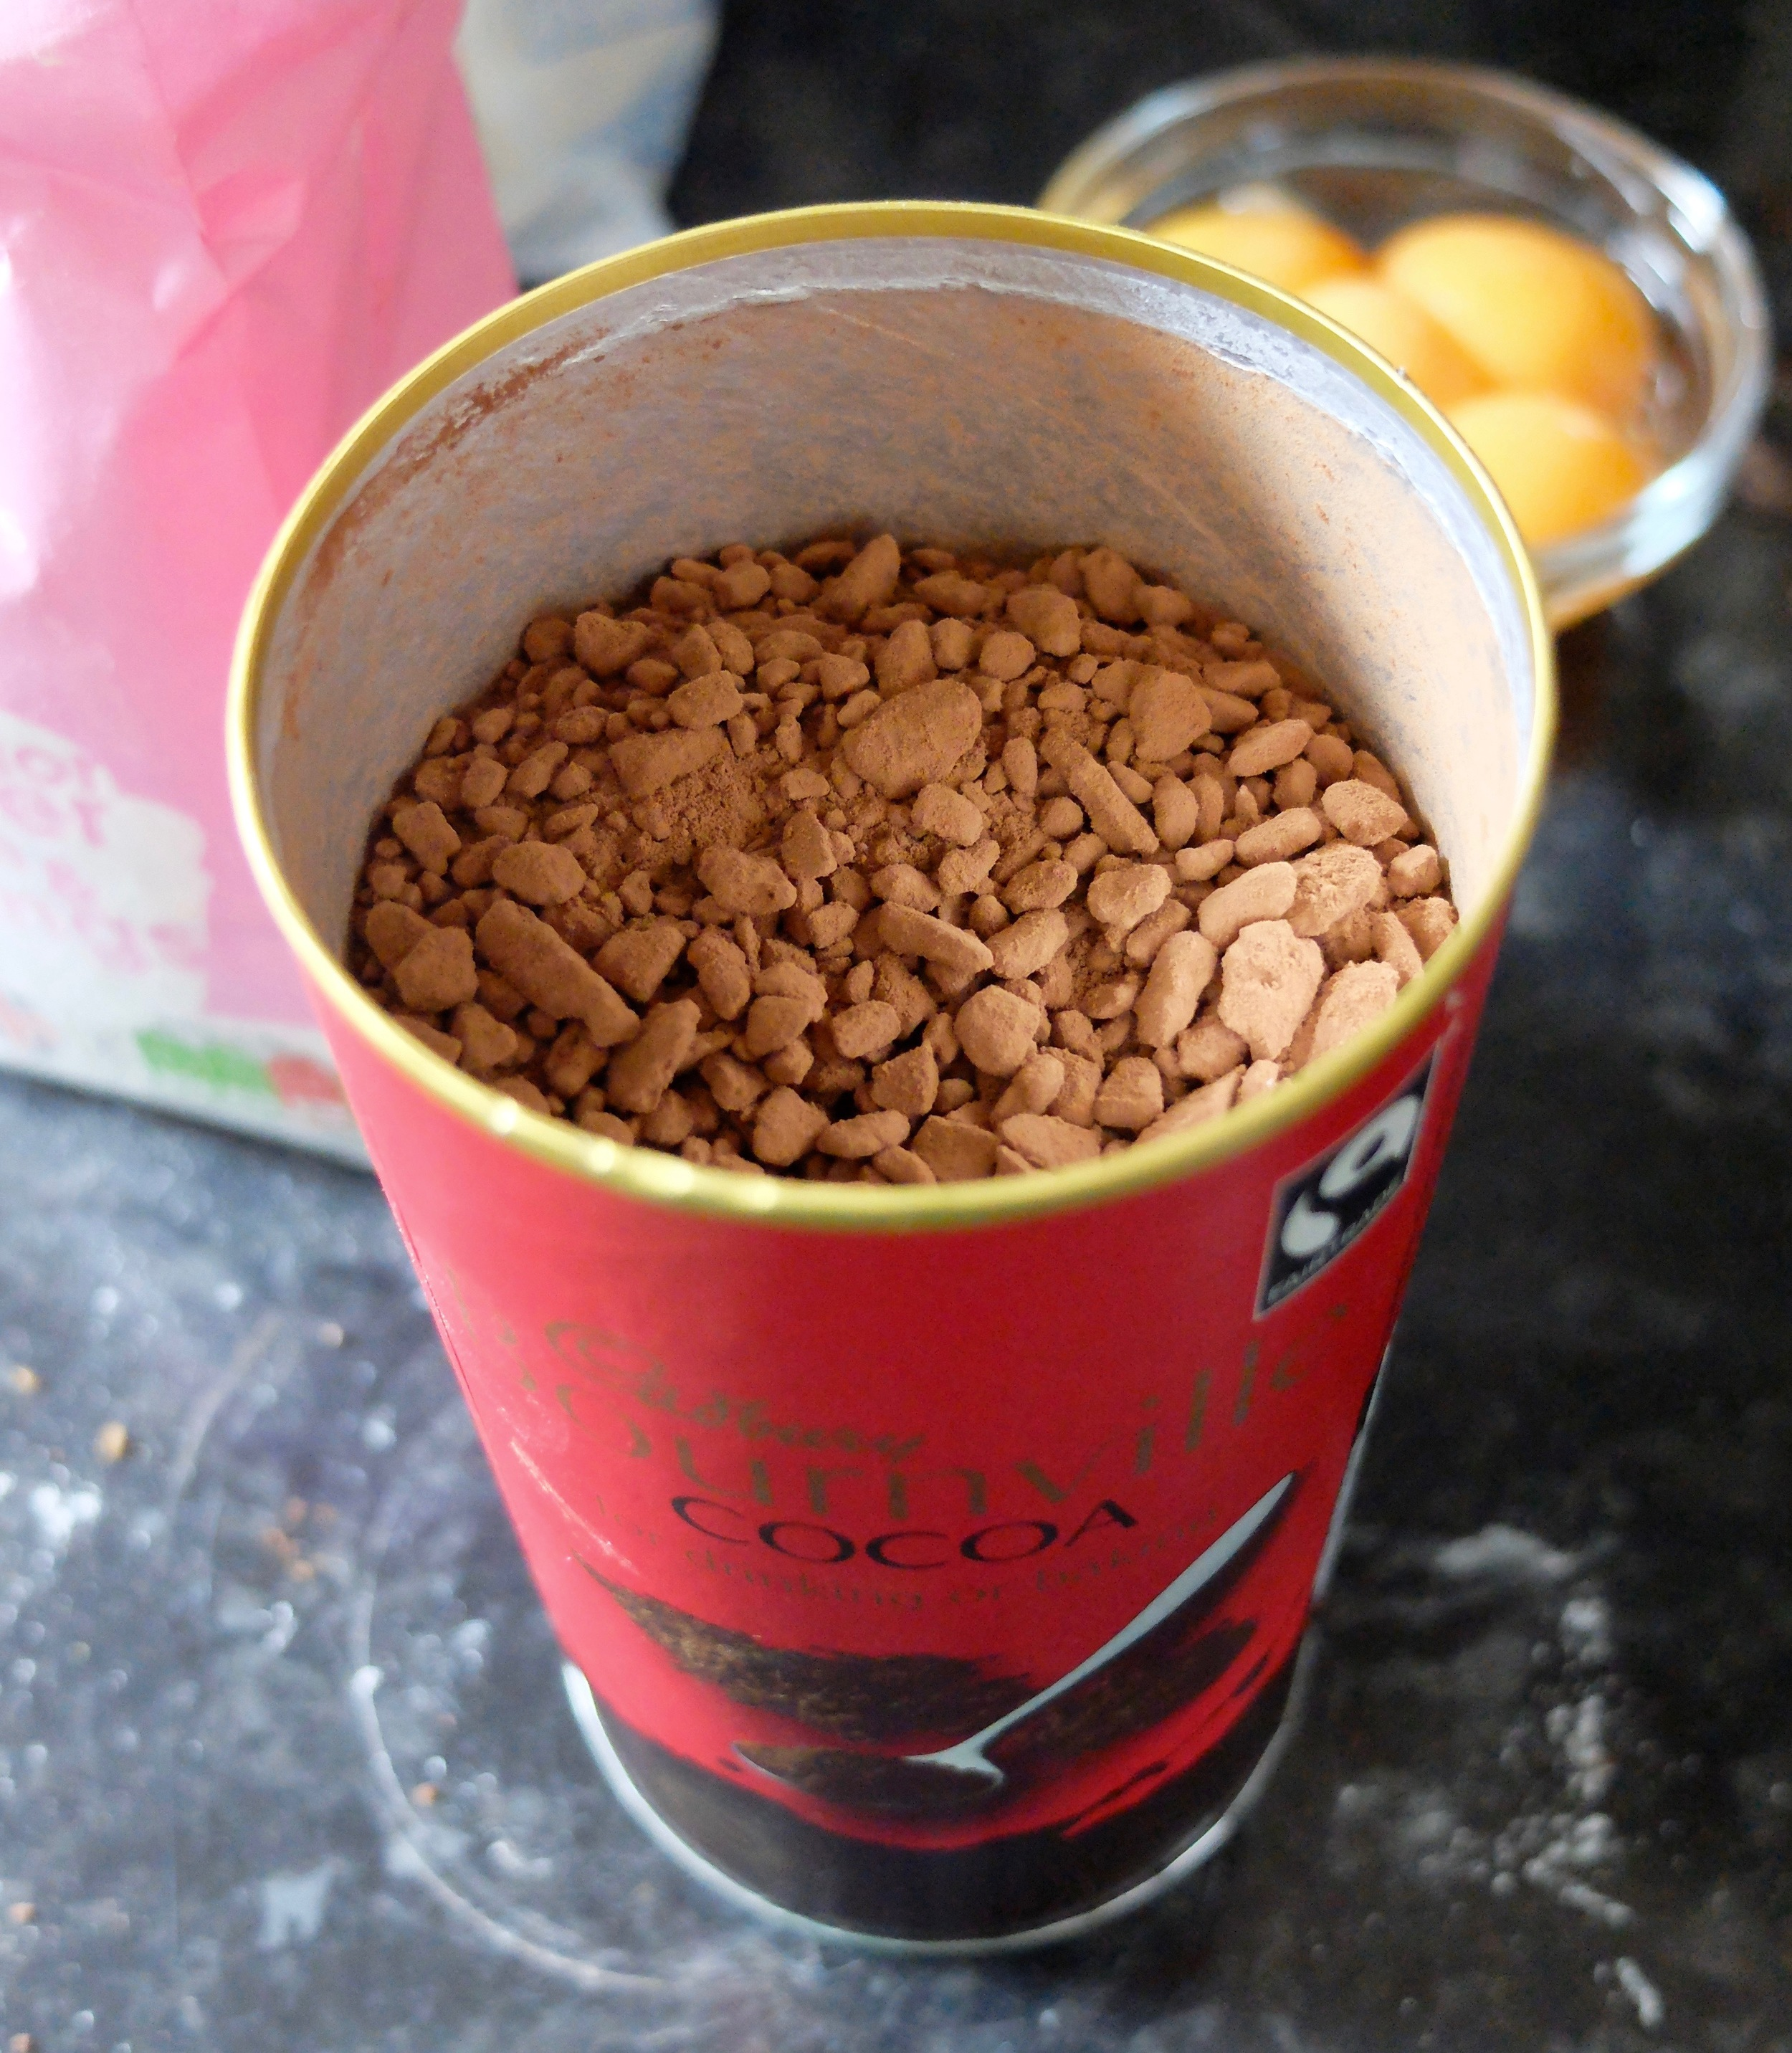 I have a really hard time finding cocoa in Scotland, but if yours looks like mine, sift it too!